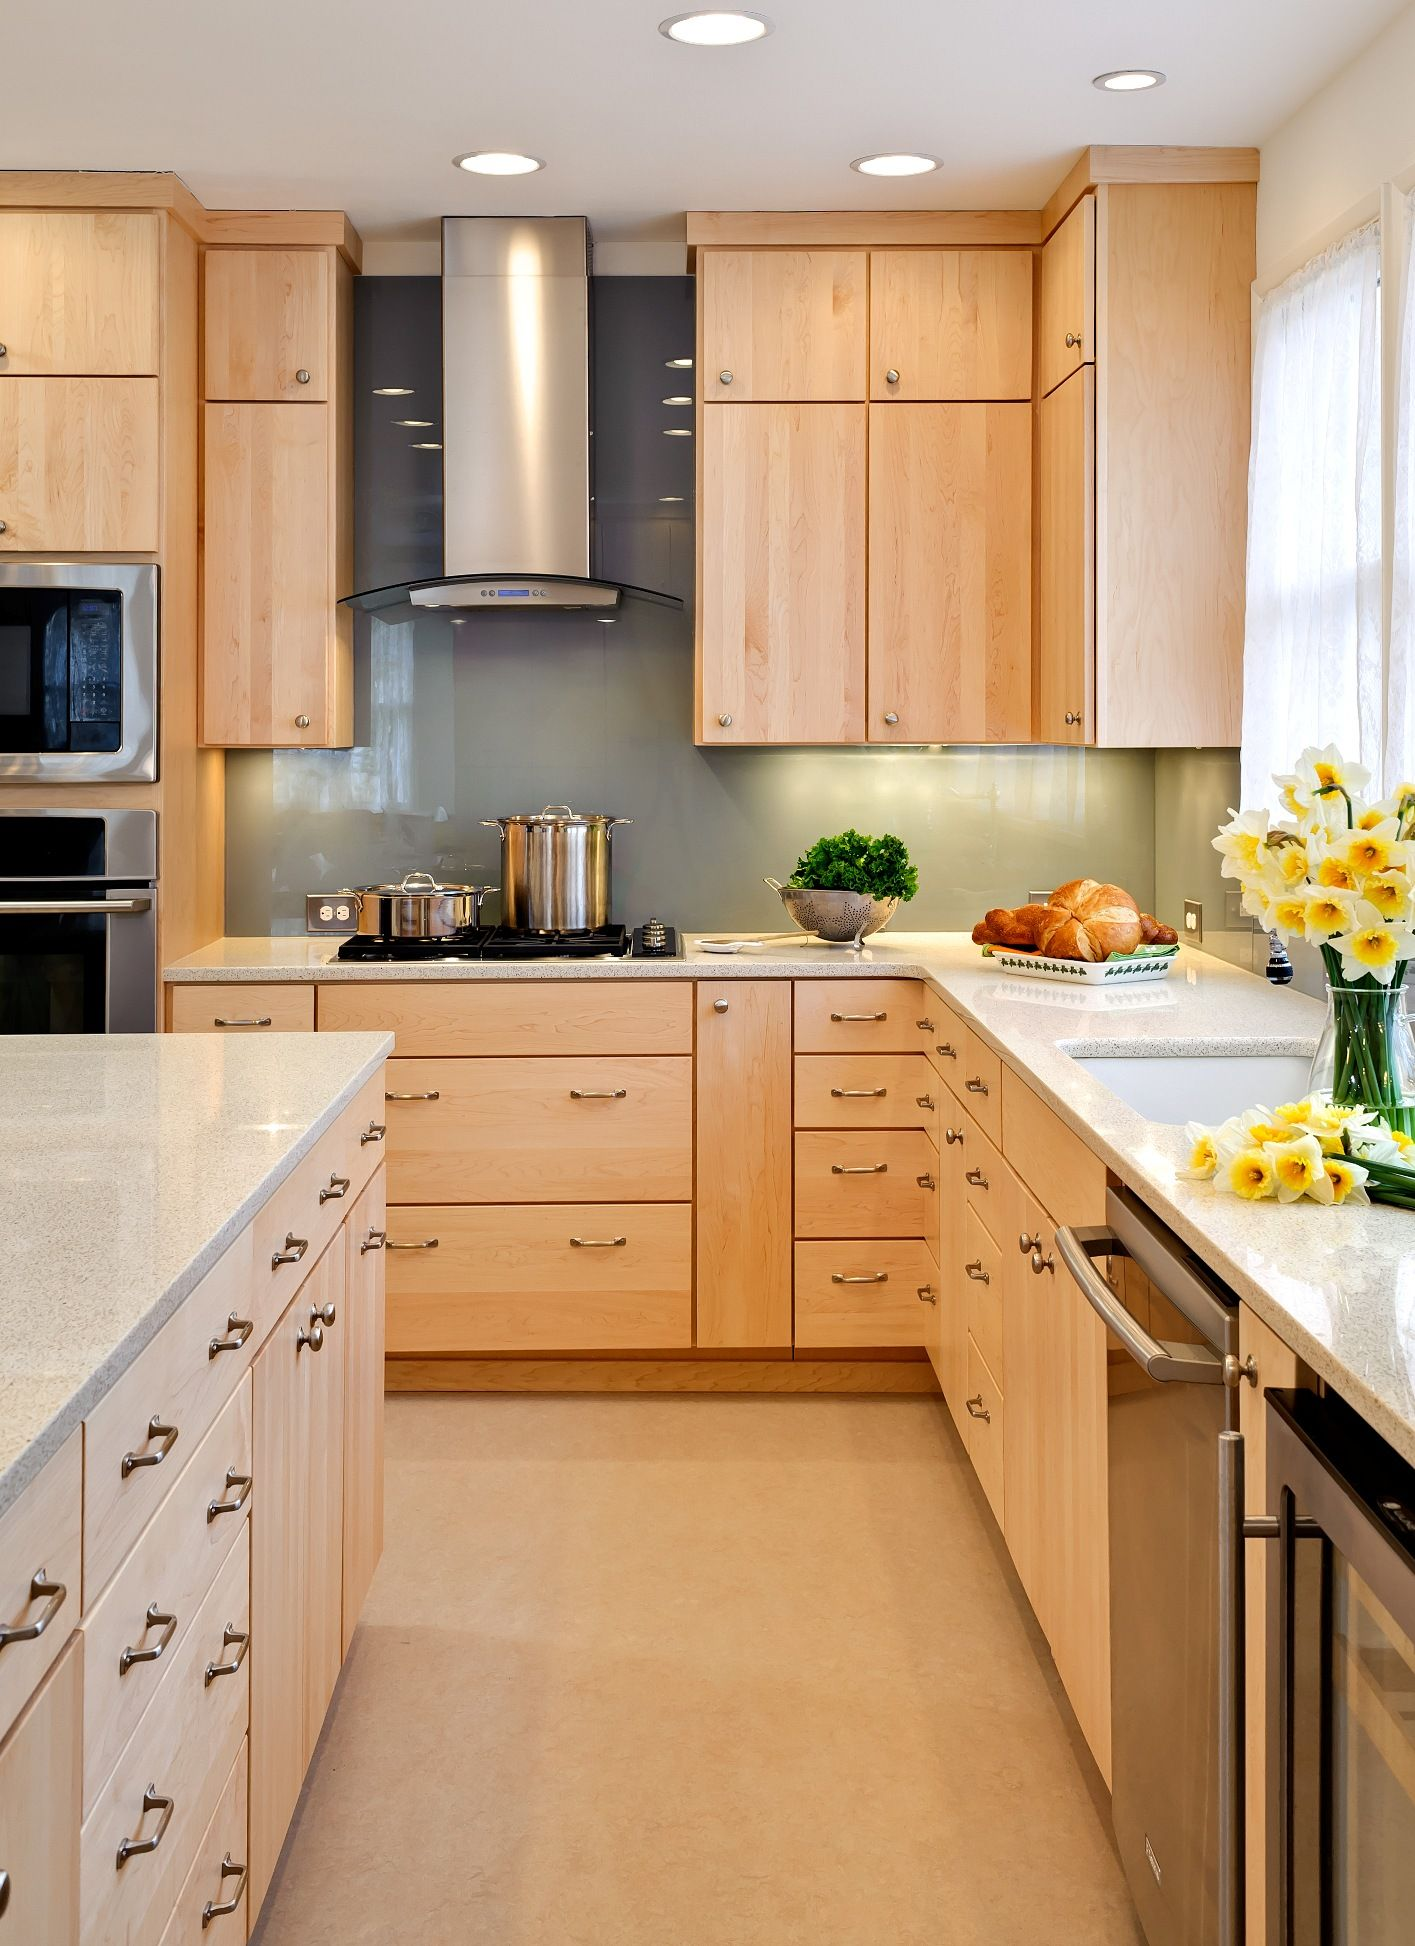 Best Kitchen Gallery: Too Modern But We Could Do Maple Cabi S As Another Option And This of Kitchen Cabinets Light Wood on rachelxblog.com